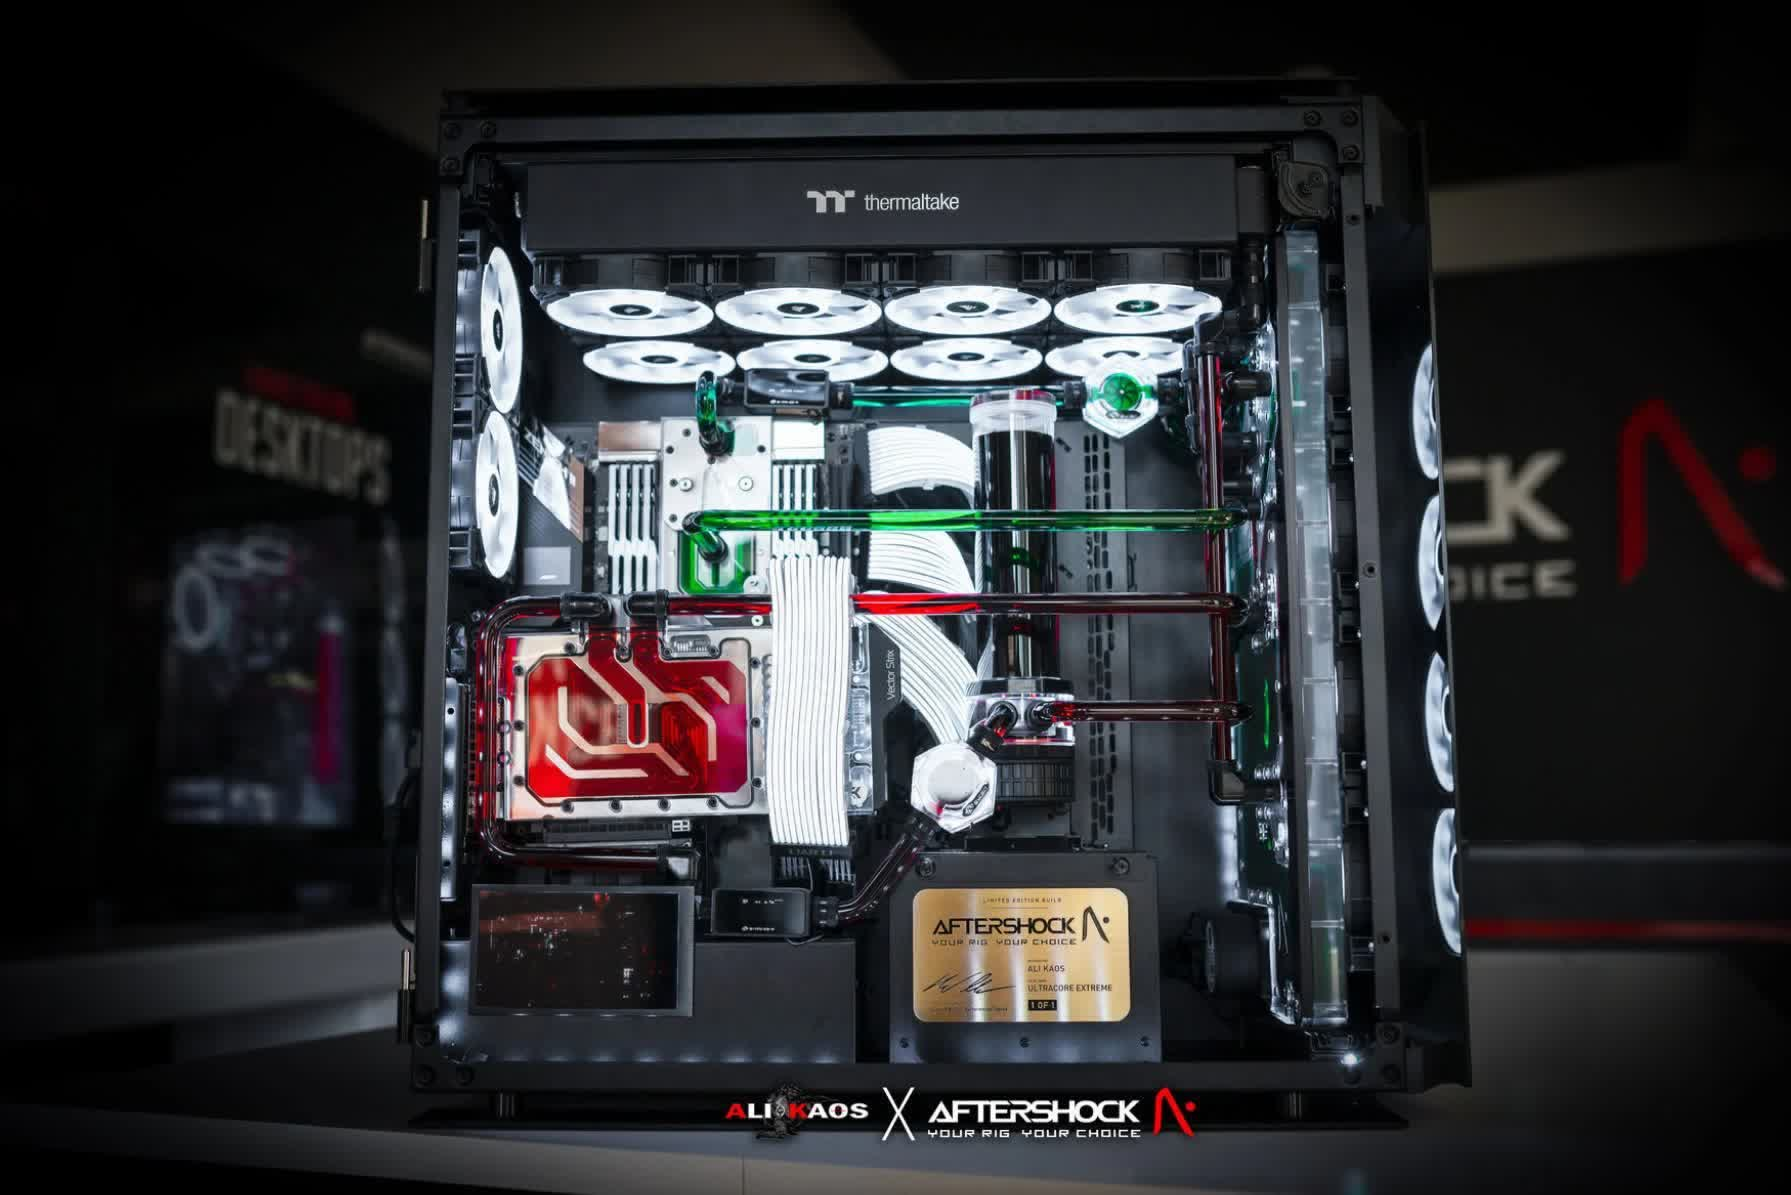 This ,000 custom PC features two RTX 3090 cards, an AMD 3990X Threadripper, and 128GB RAM